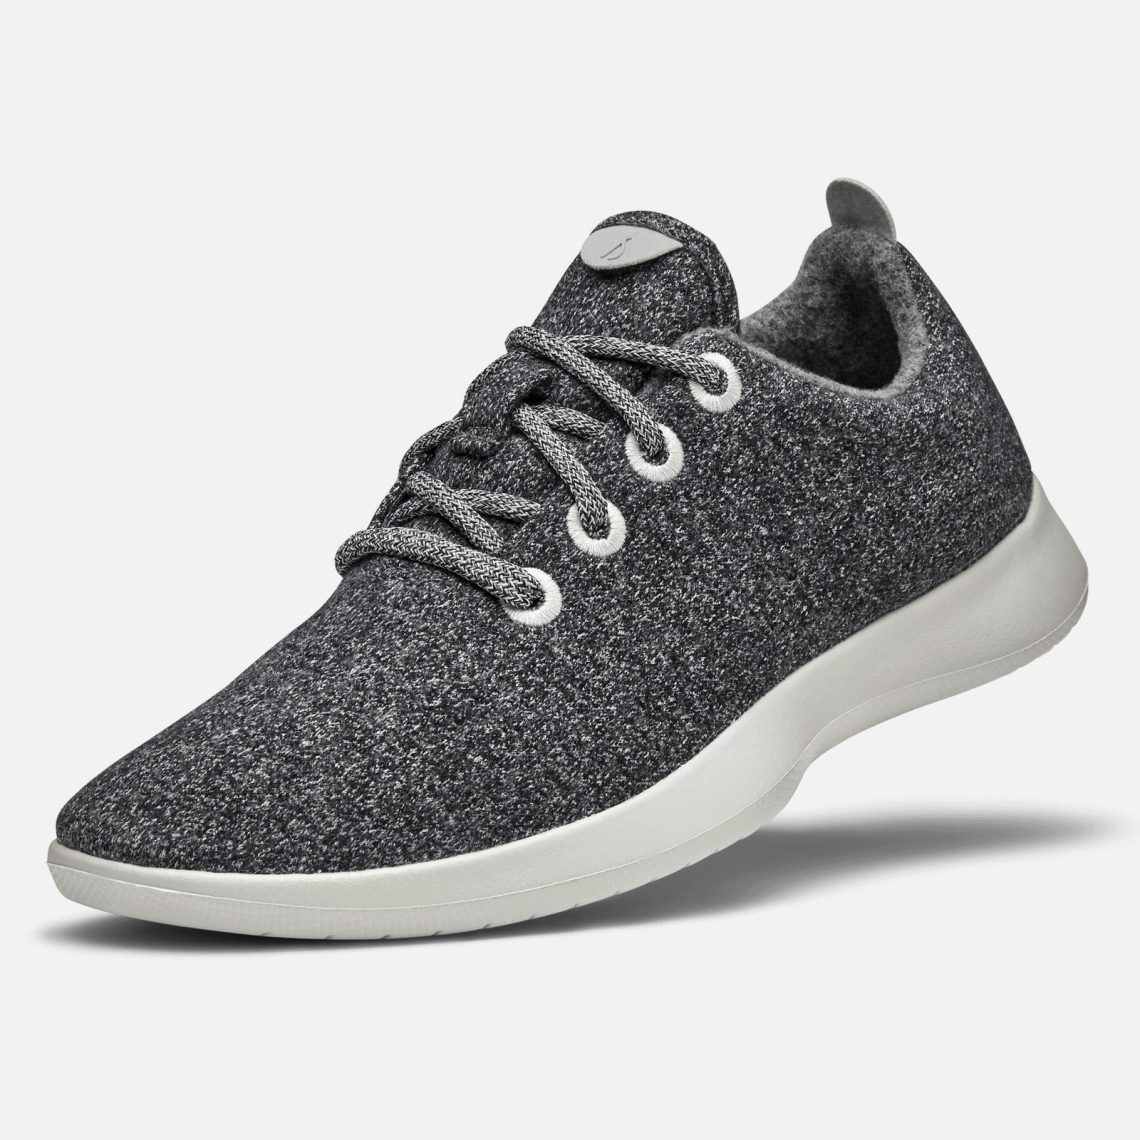 Allbirds Wool Runner Travel Gift Guide